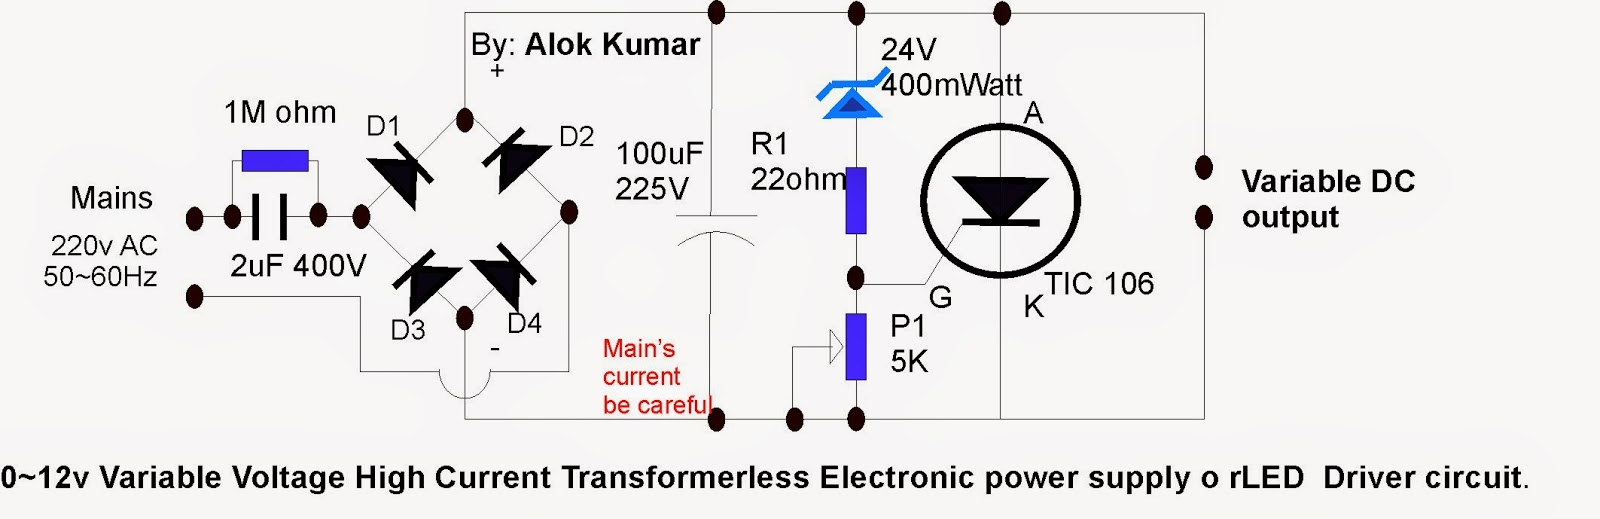 medium resolution of electronic circuits transformerless power supply led drivers circuit diagram 12 volt dc led dimmer wiring